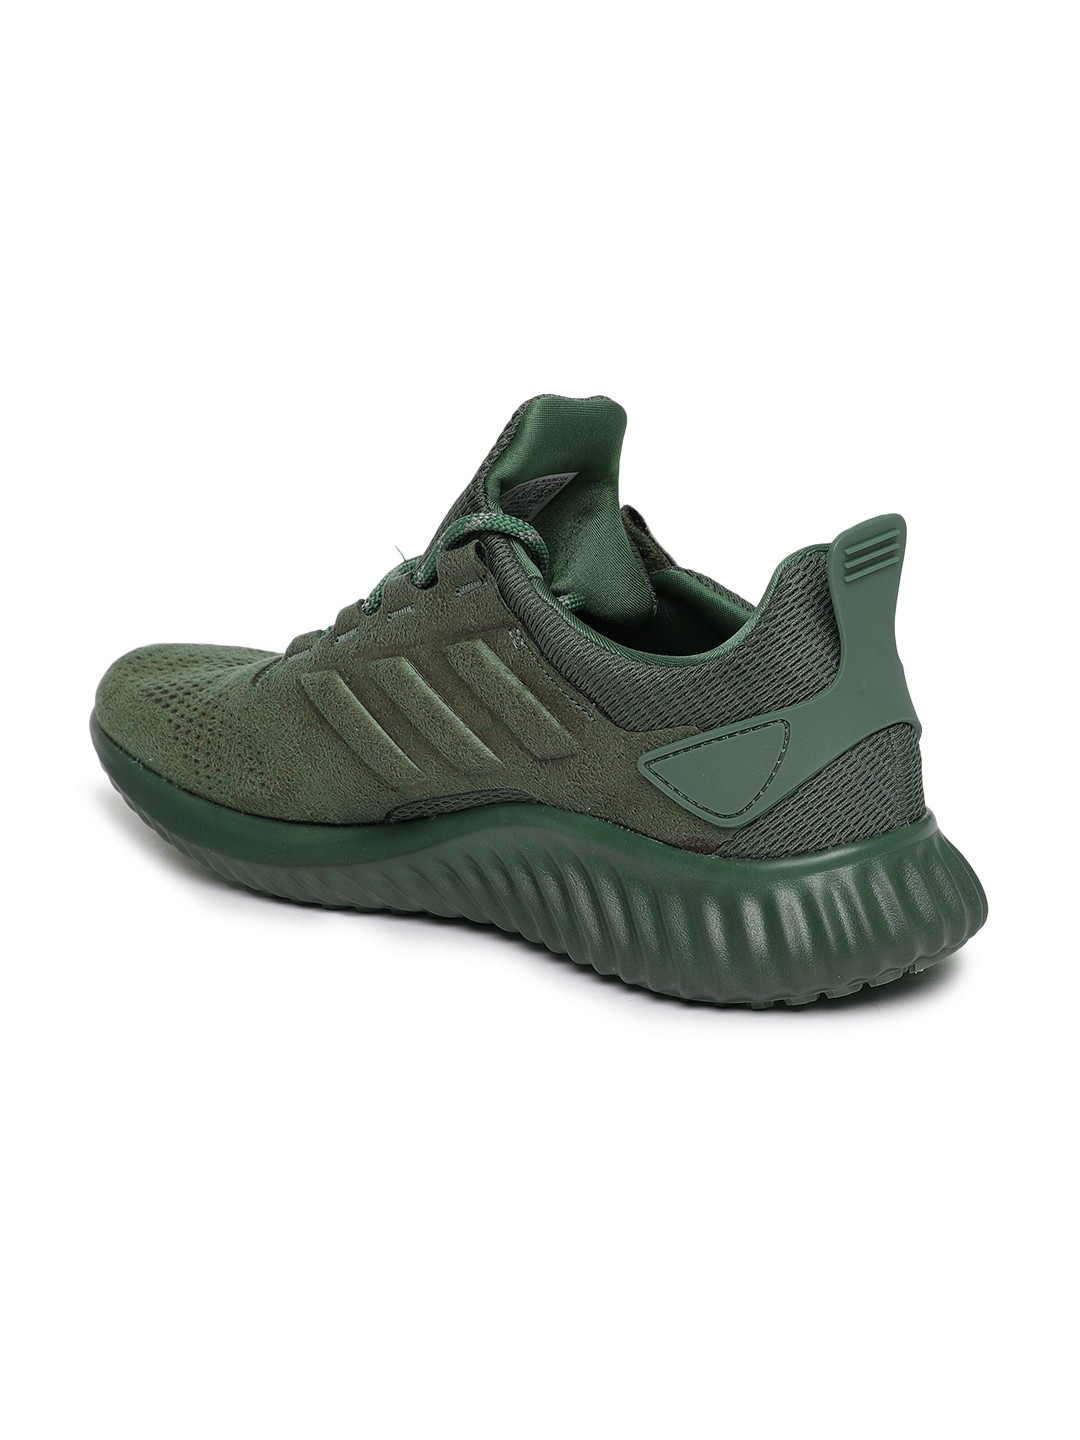 5740faf26 Buy ADIDAS Men Olive Green Alphabounce CR Running Shoes - Sports ...